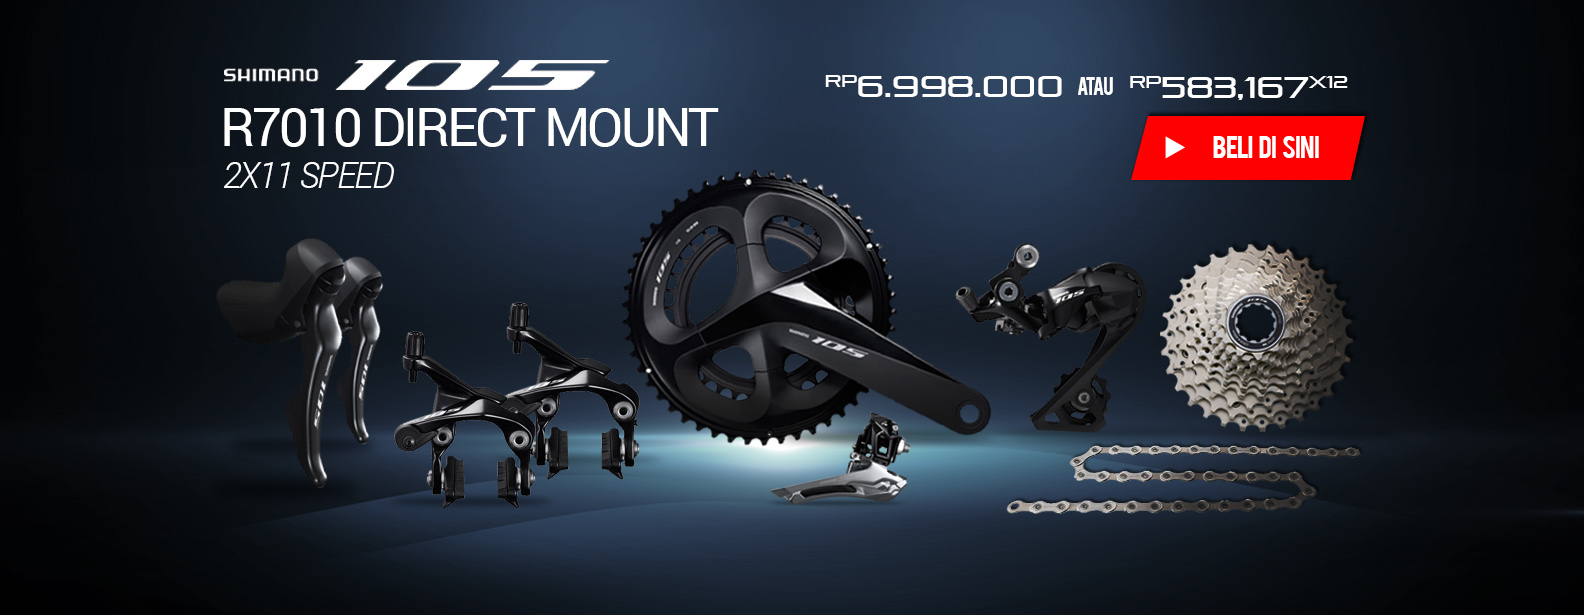 Shimano Groupset Sepeda 105 R7010 Direct Mount 2x11 Speed